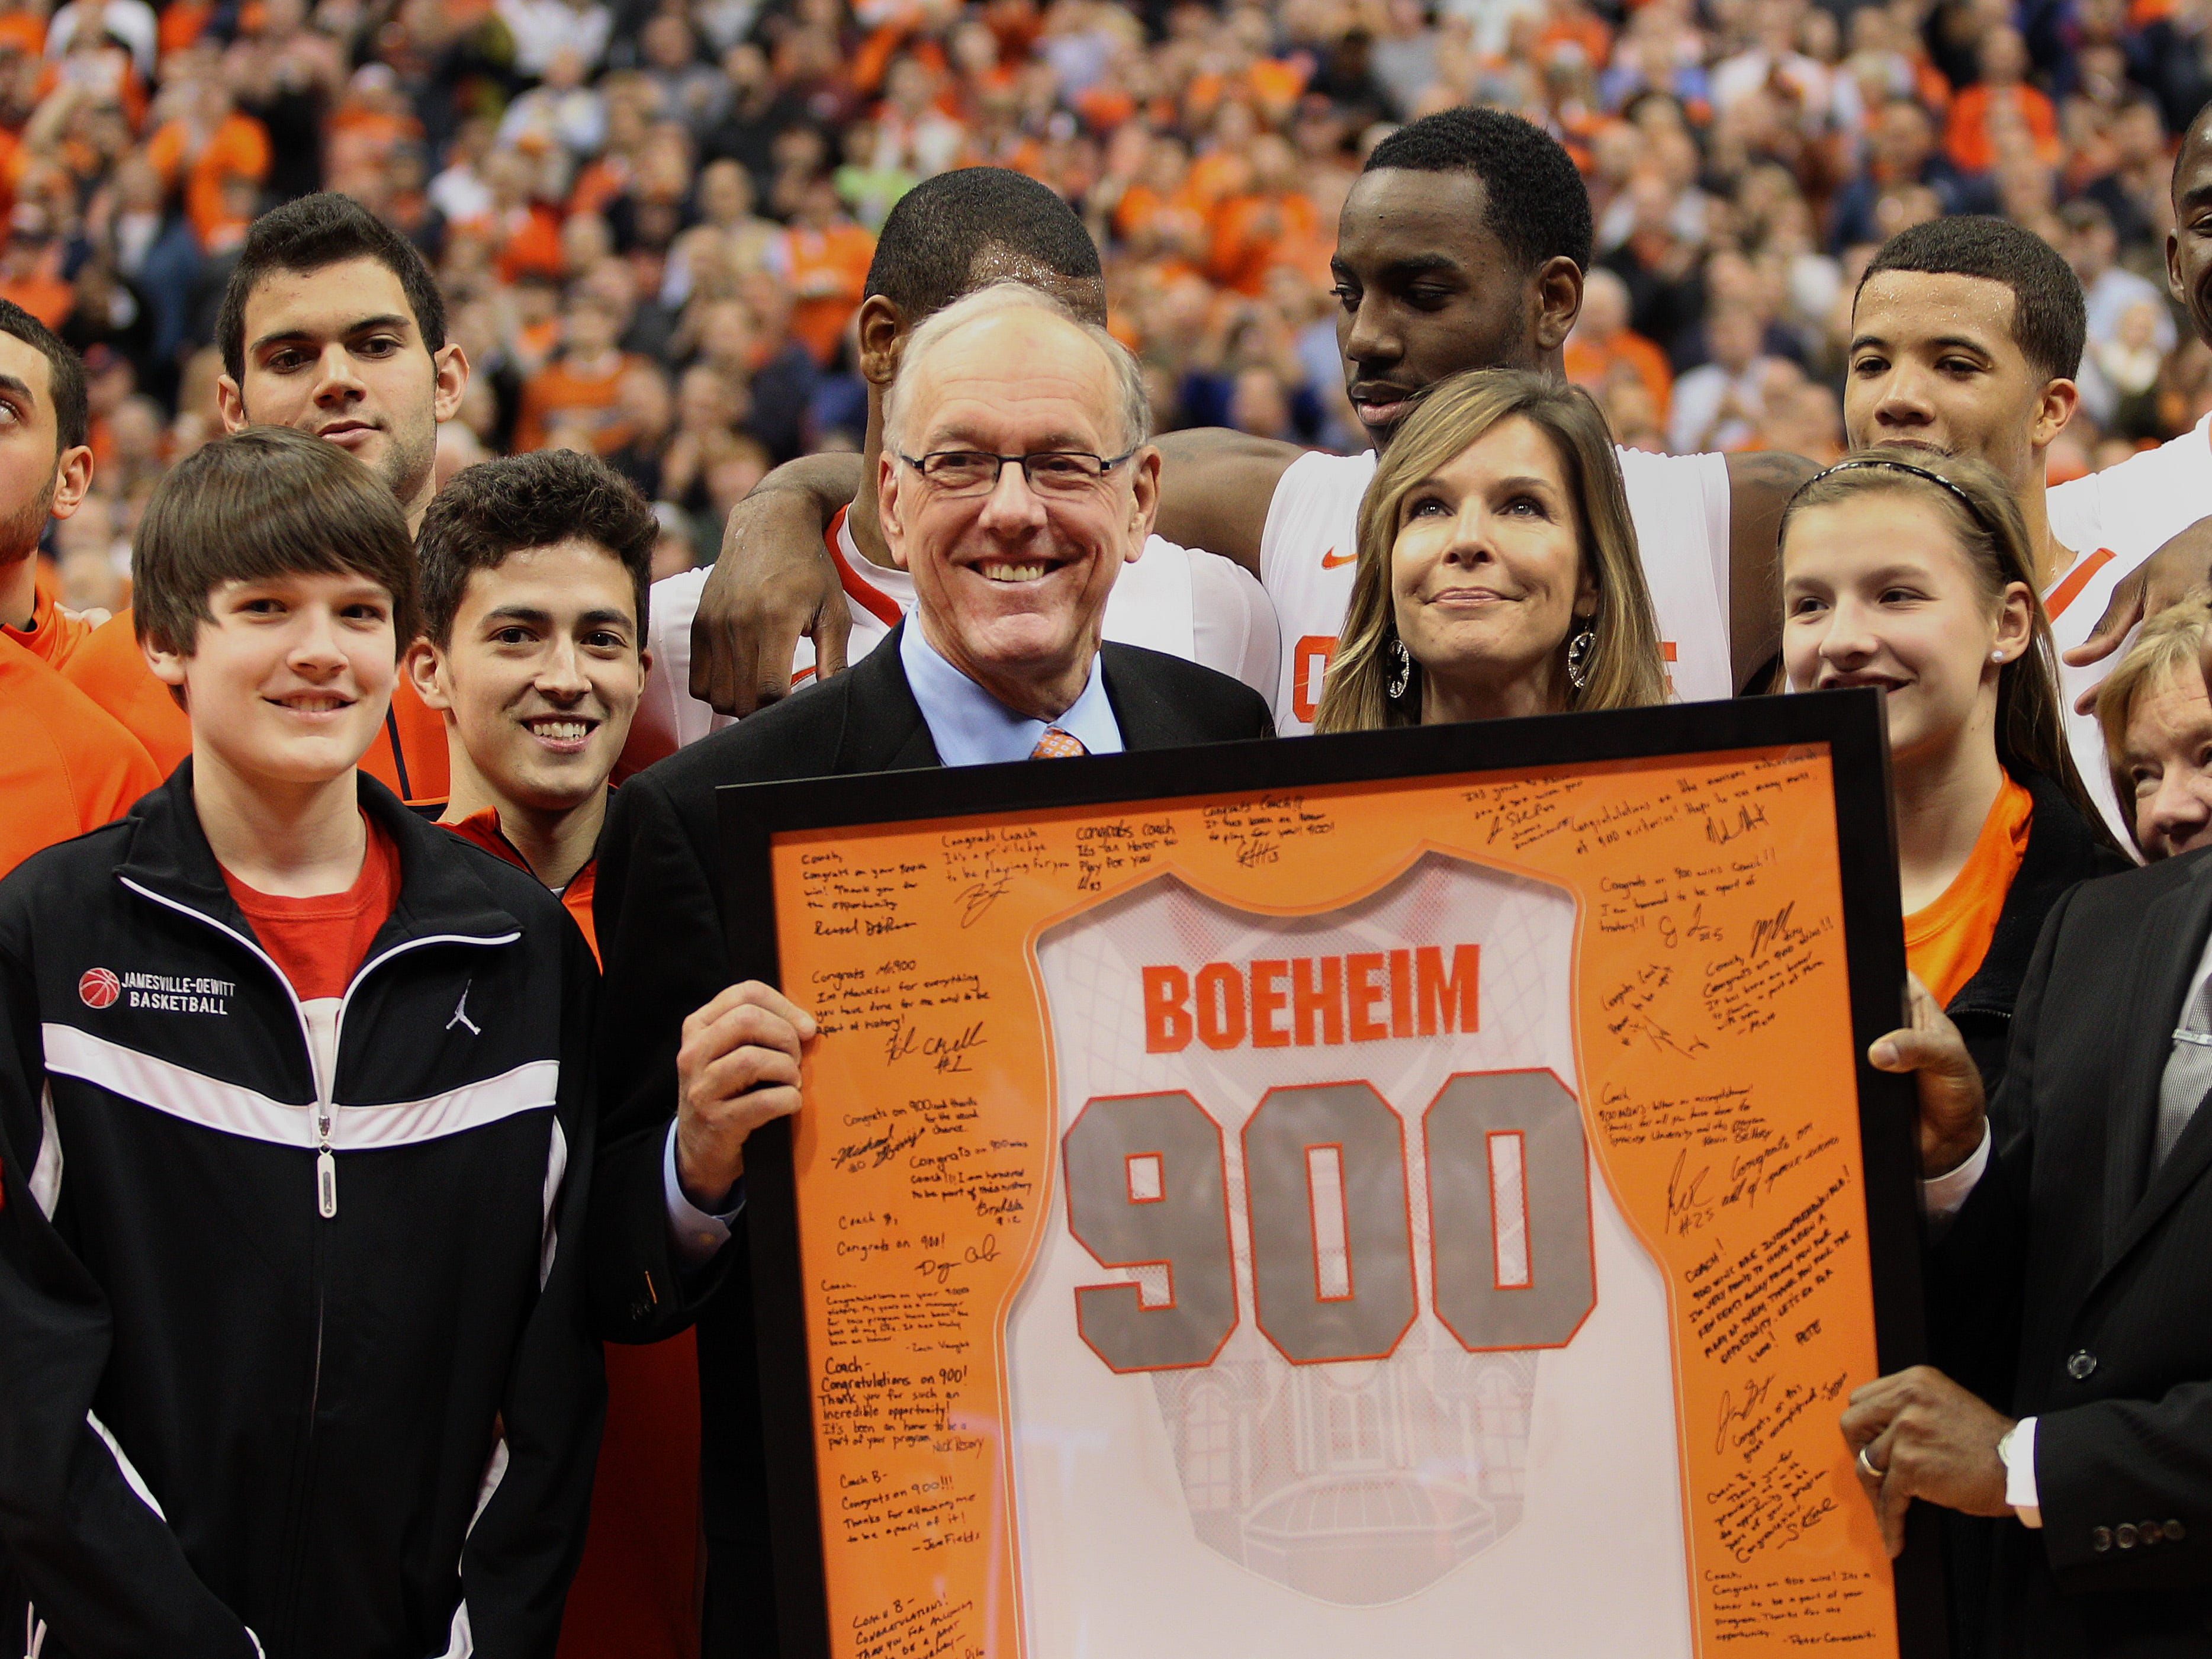 2012: Syracuse basketball coach Jim Boeheim with his family  (wife Juli in middle) and team after  his 900th career win  beating University of Detroit 72-68.